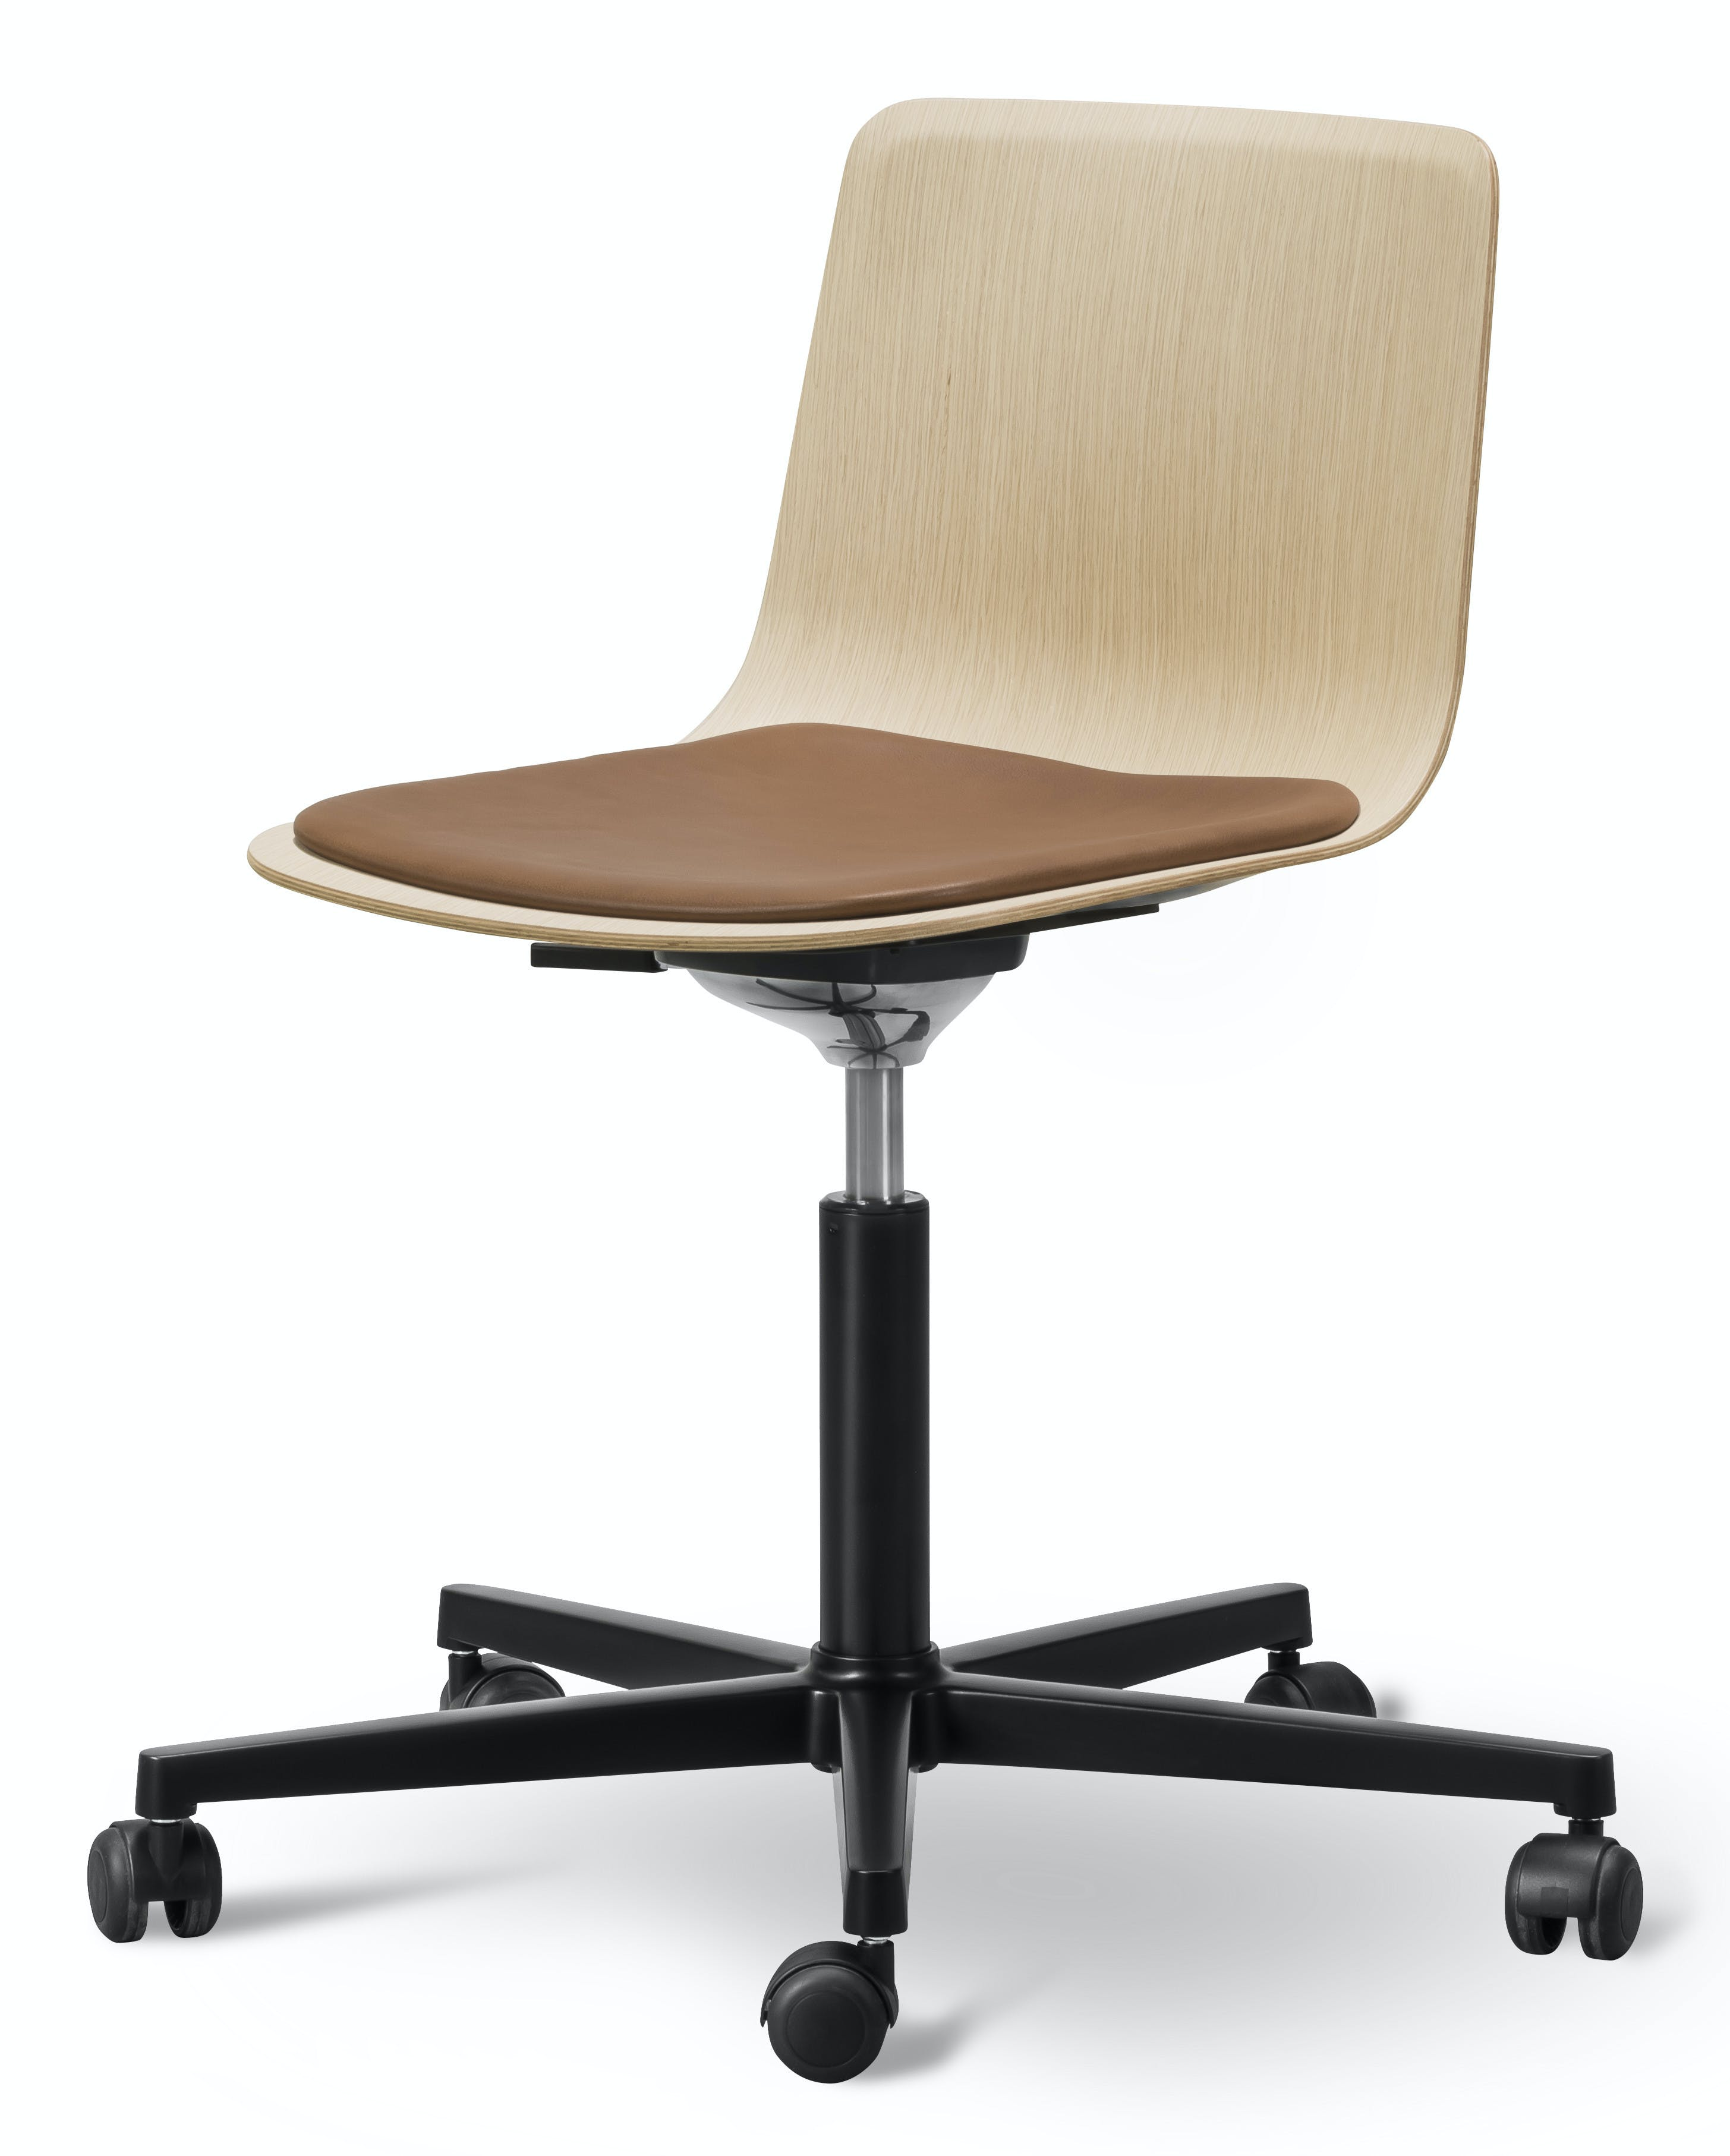 Fredericia Pato Office Chair Veneer Side Haute Living